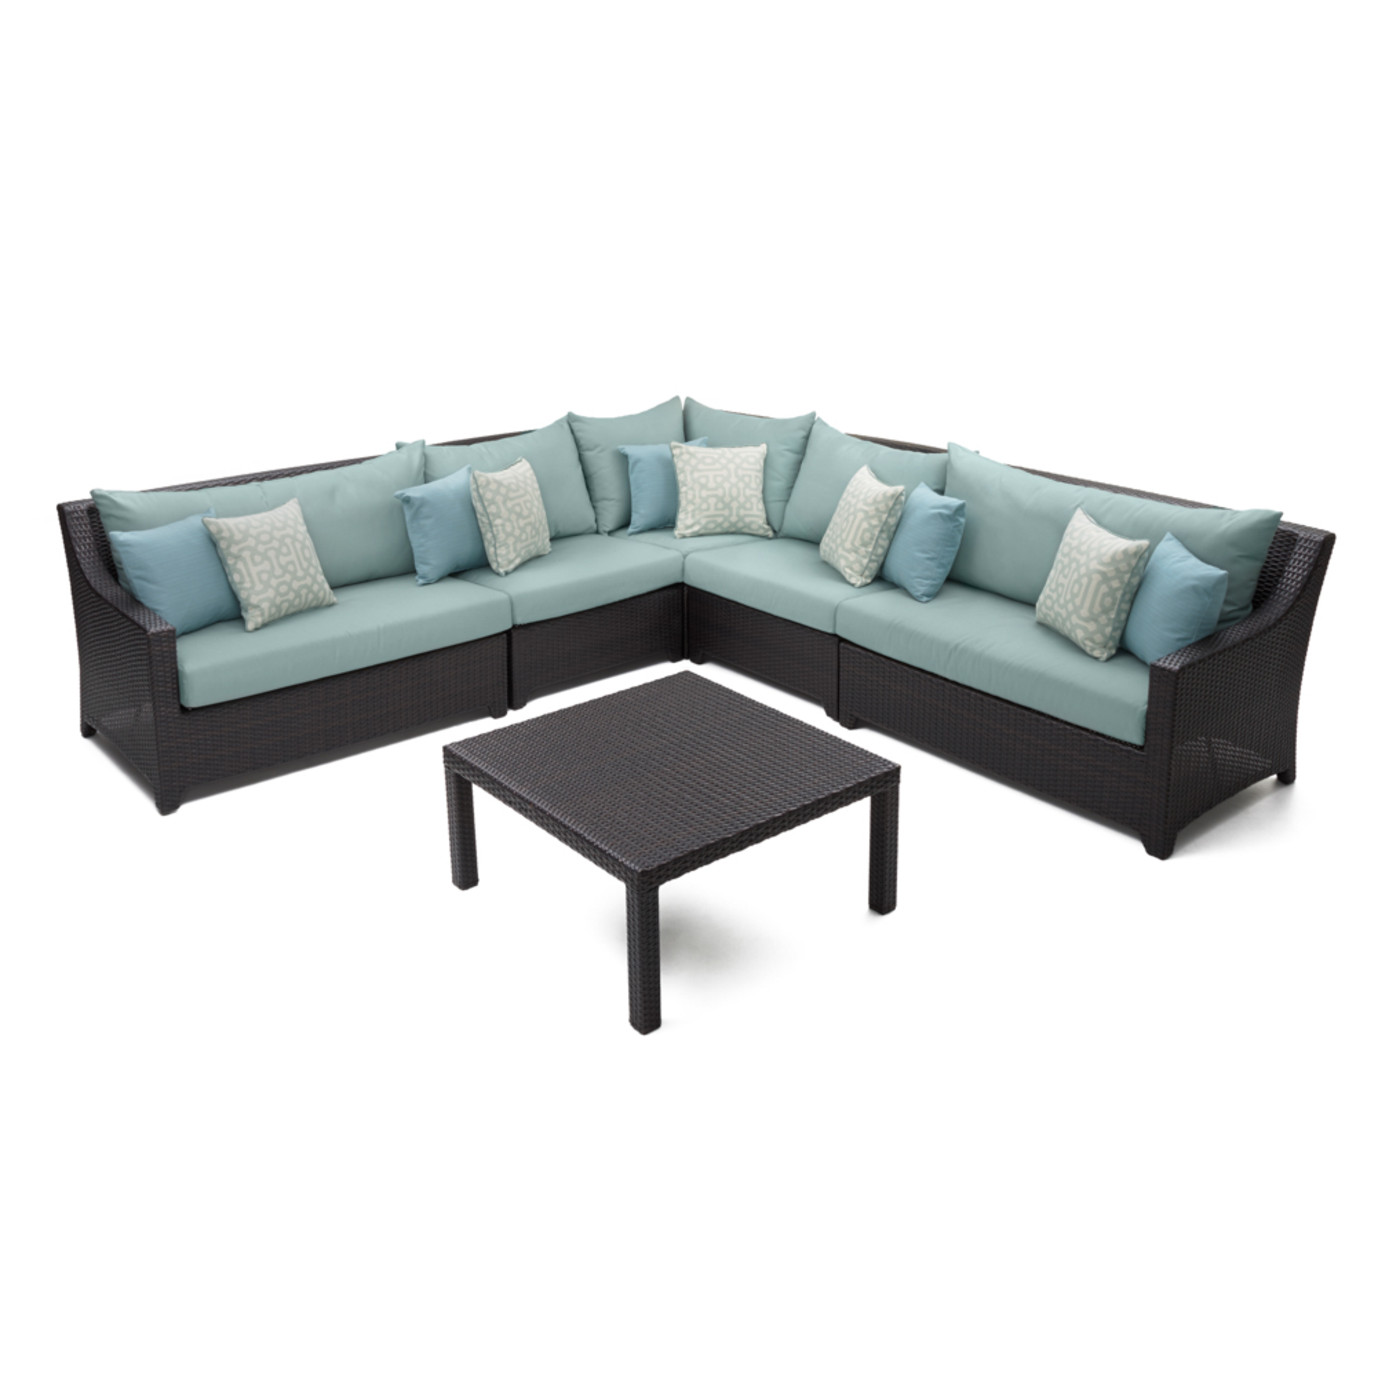 Deco™ 6pc Sectional and Table - Spa Blue